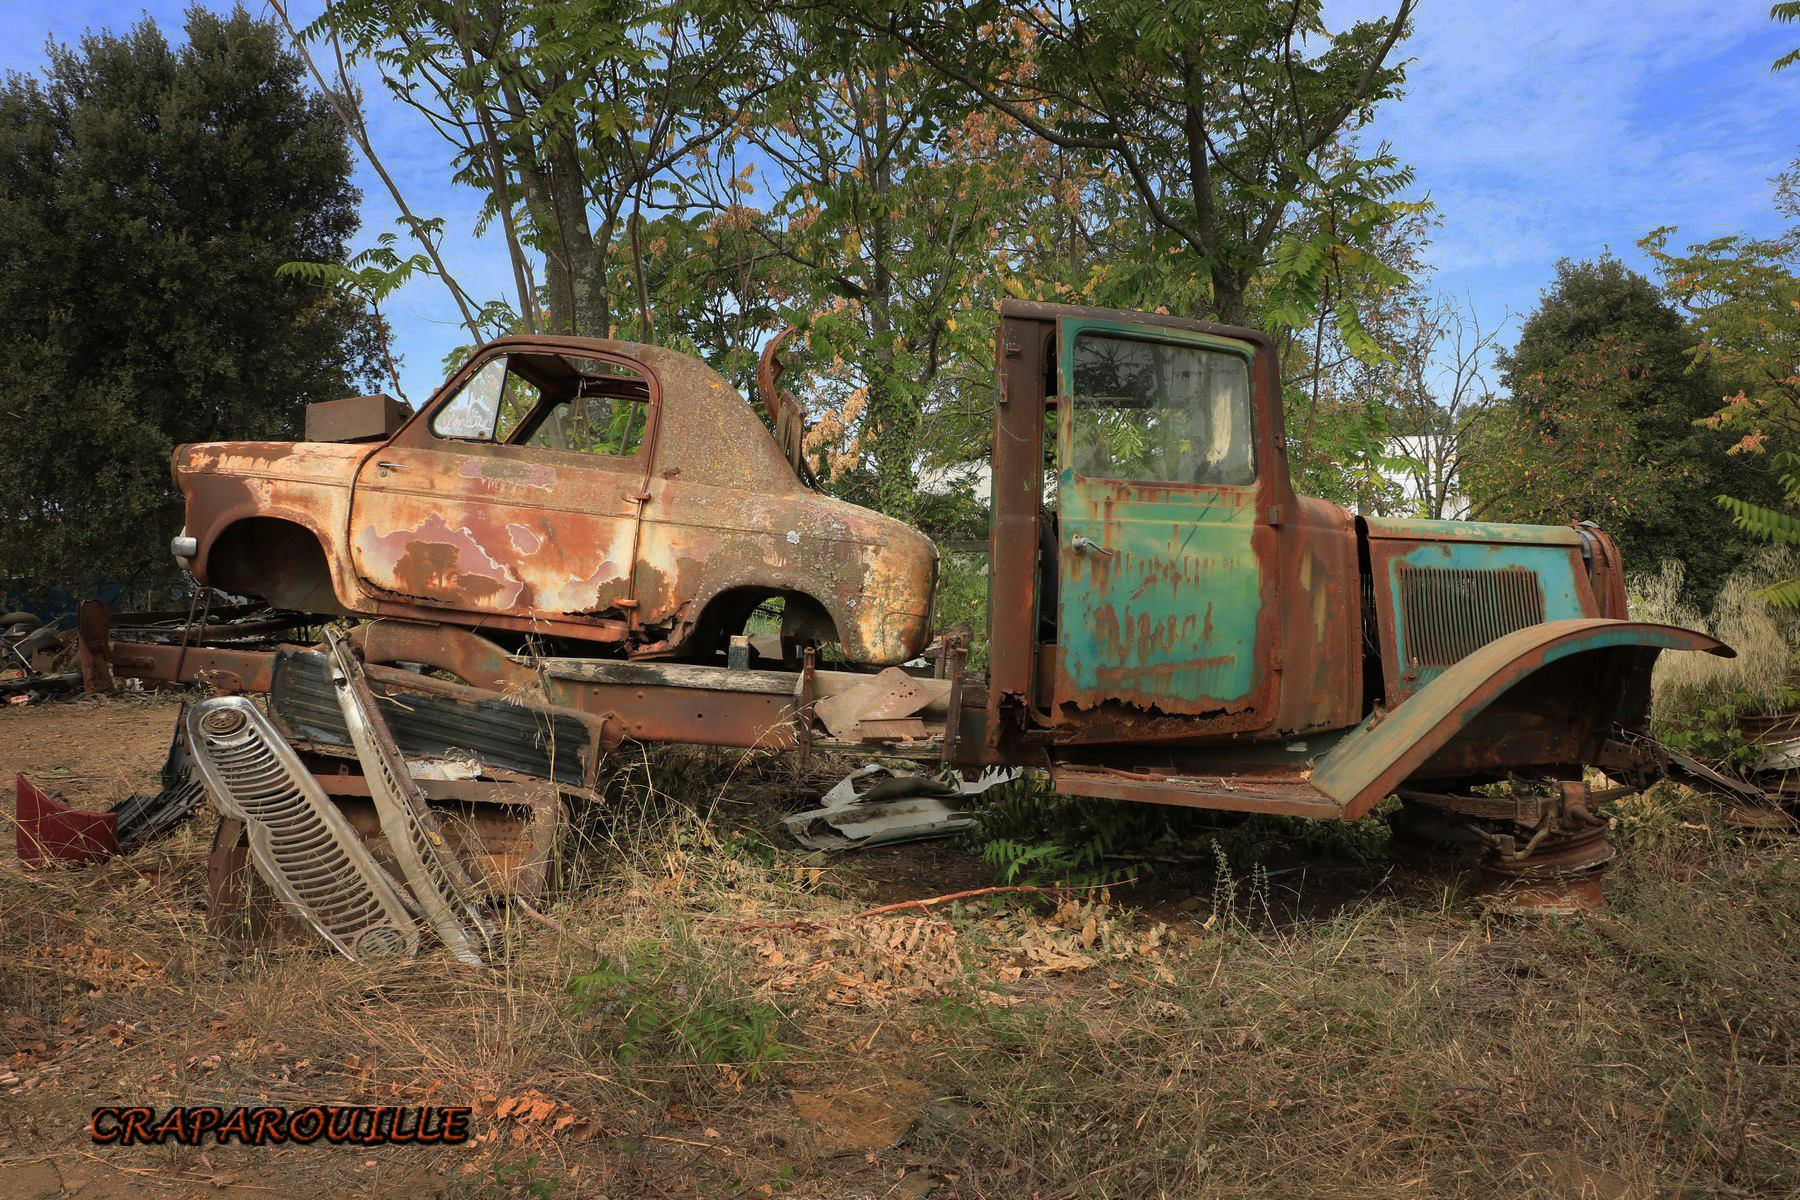 Photography-Diamonds-in-Rust-Craparouille-73